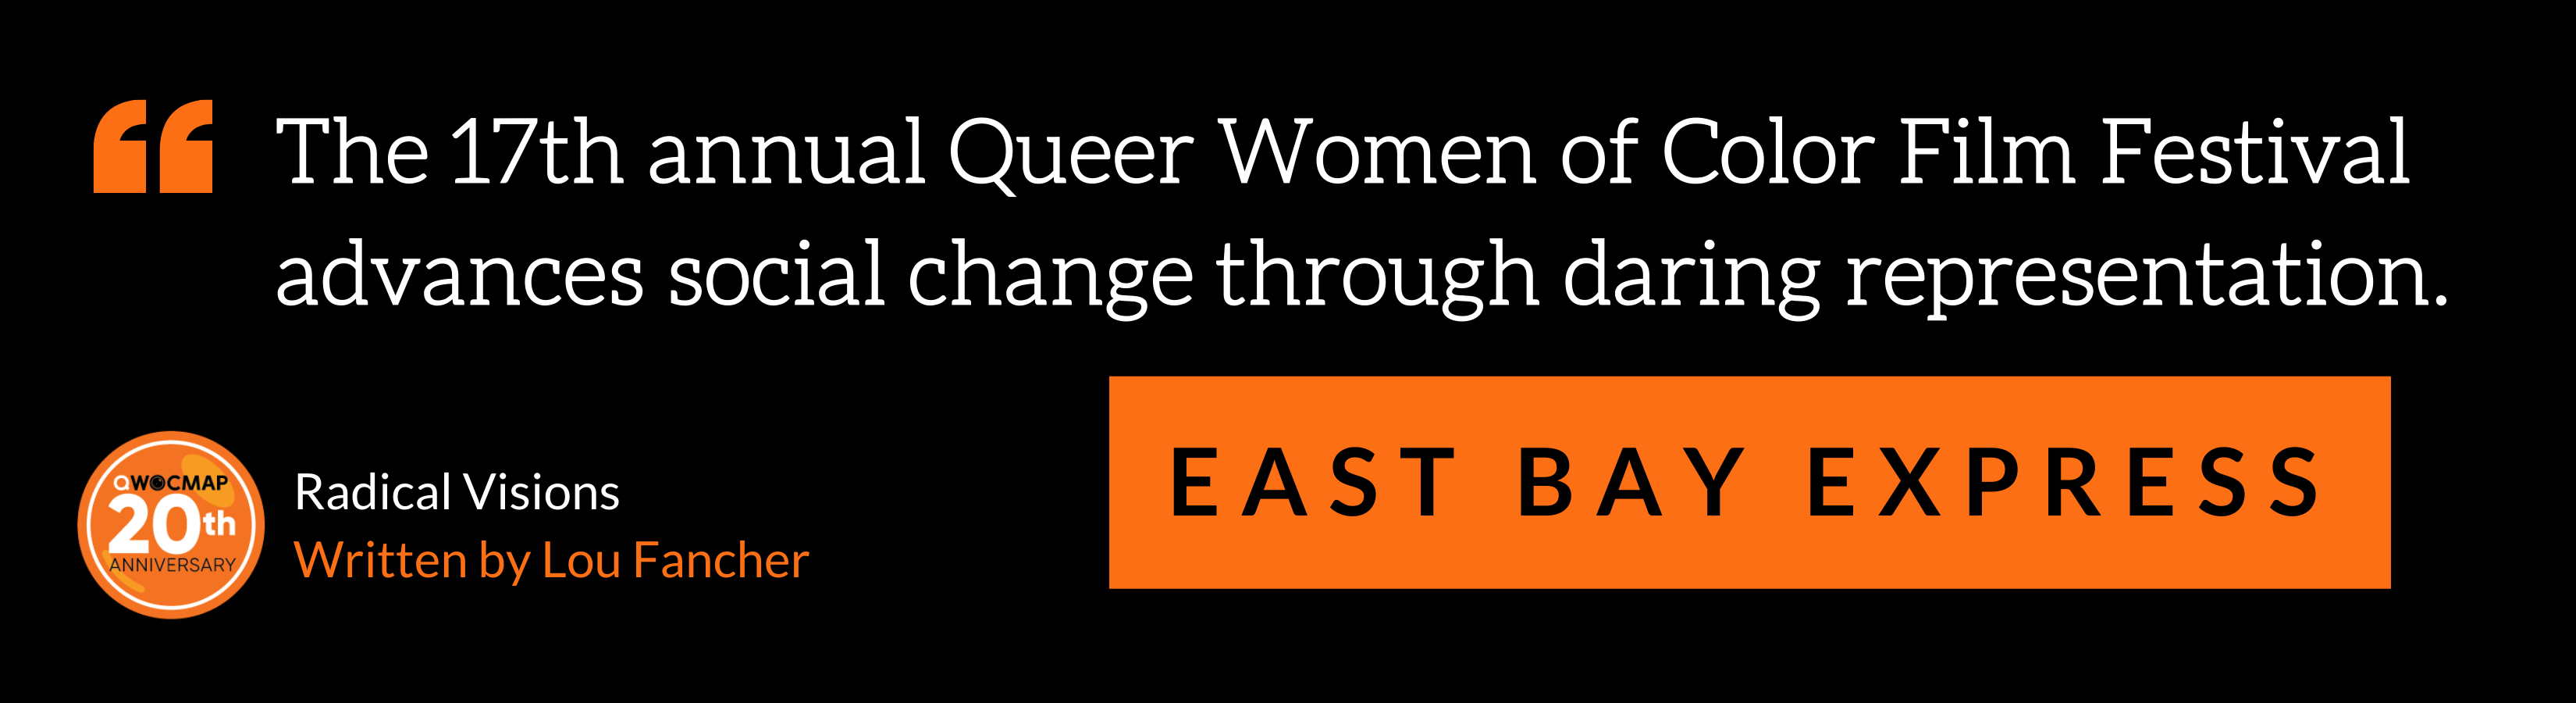 """On a black background, white text in orange quotation marks reads, """"The 17th annual Queer Women of Color Film Festival advances social change through daring representation."""" Below, black text in an orange box reads East Bay Express. In the bottom left corner is the QWOCMAP 20th anniversary logo, and white and orange text that reads Radical Visions, written by Lou Fancher."""